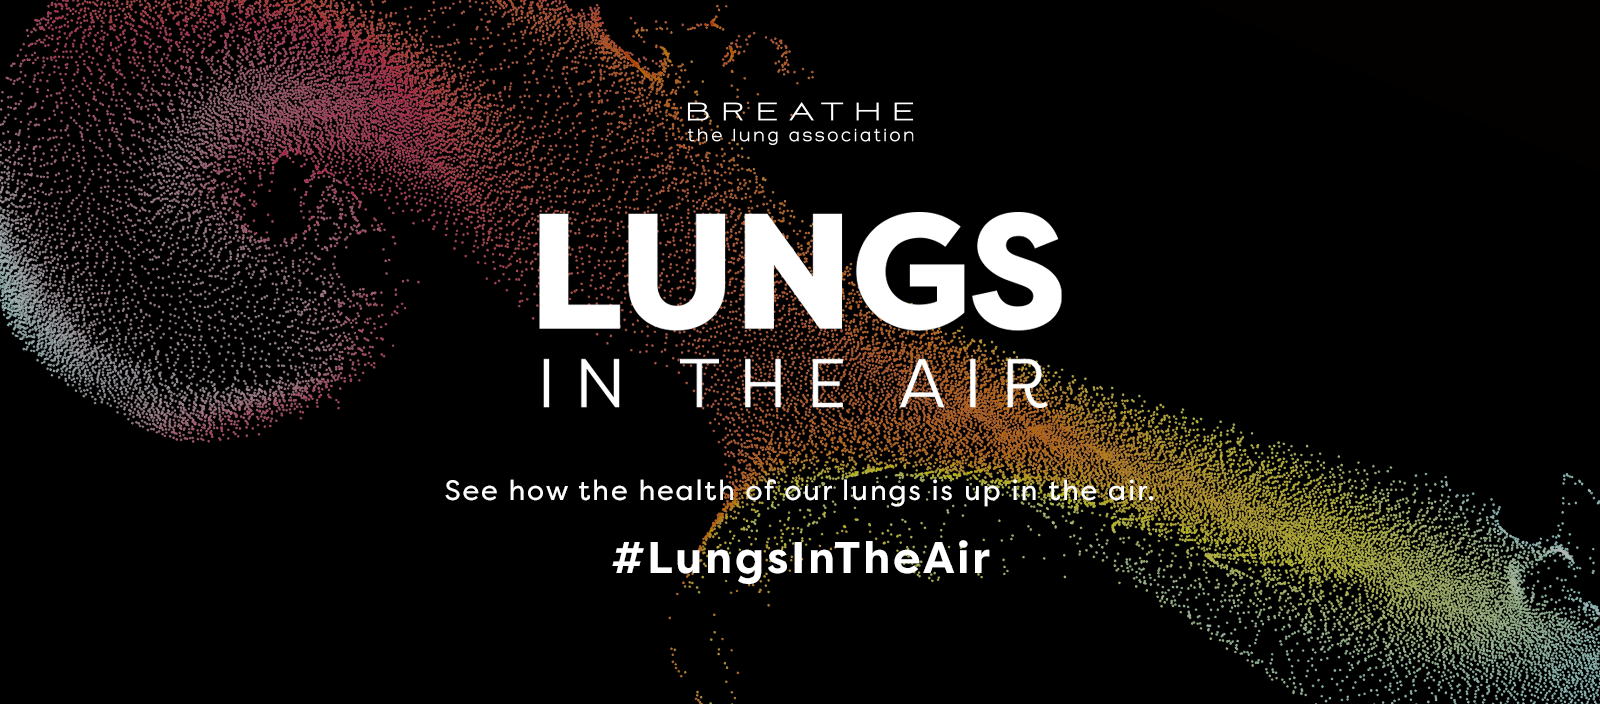 Lungs in the air